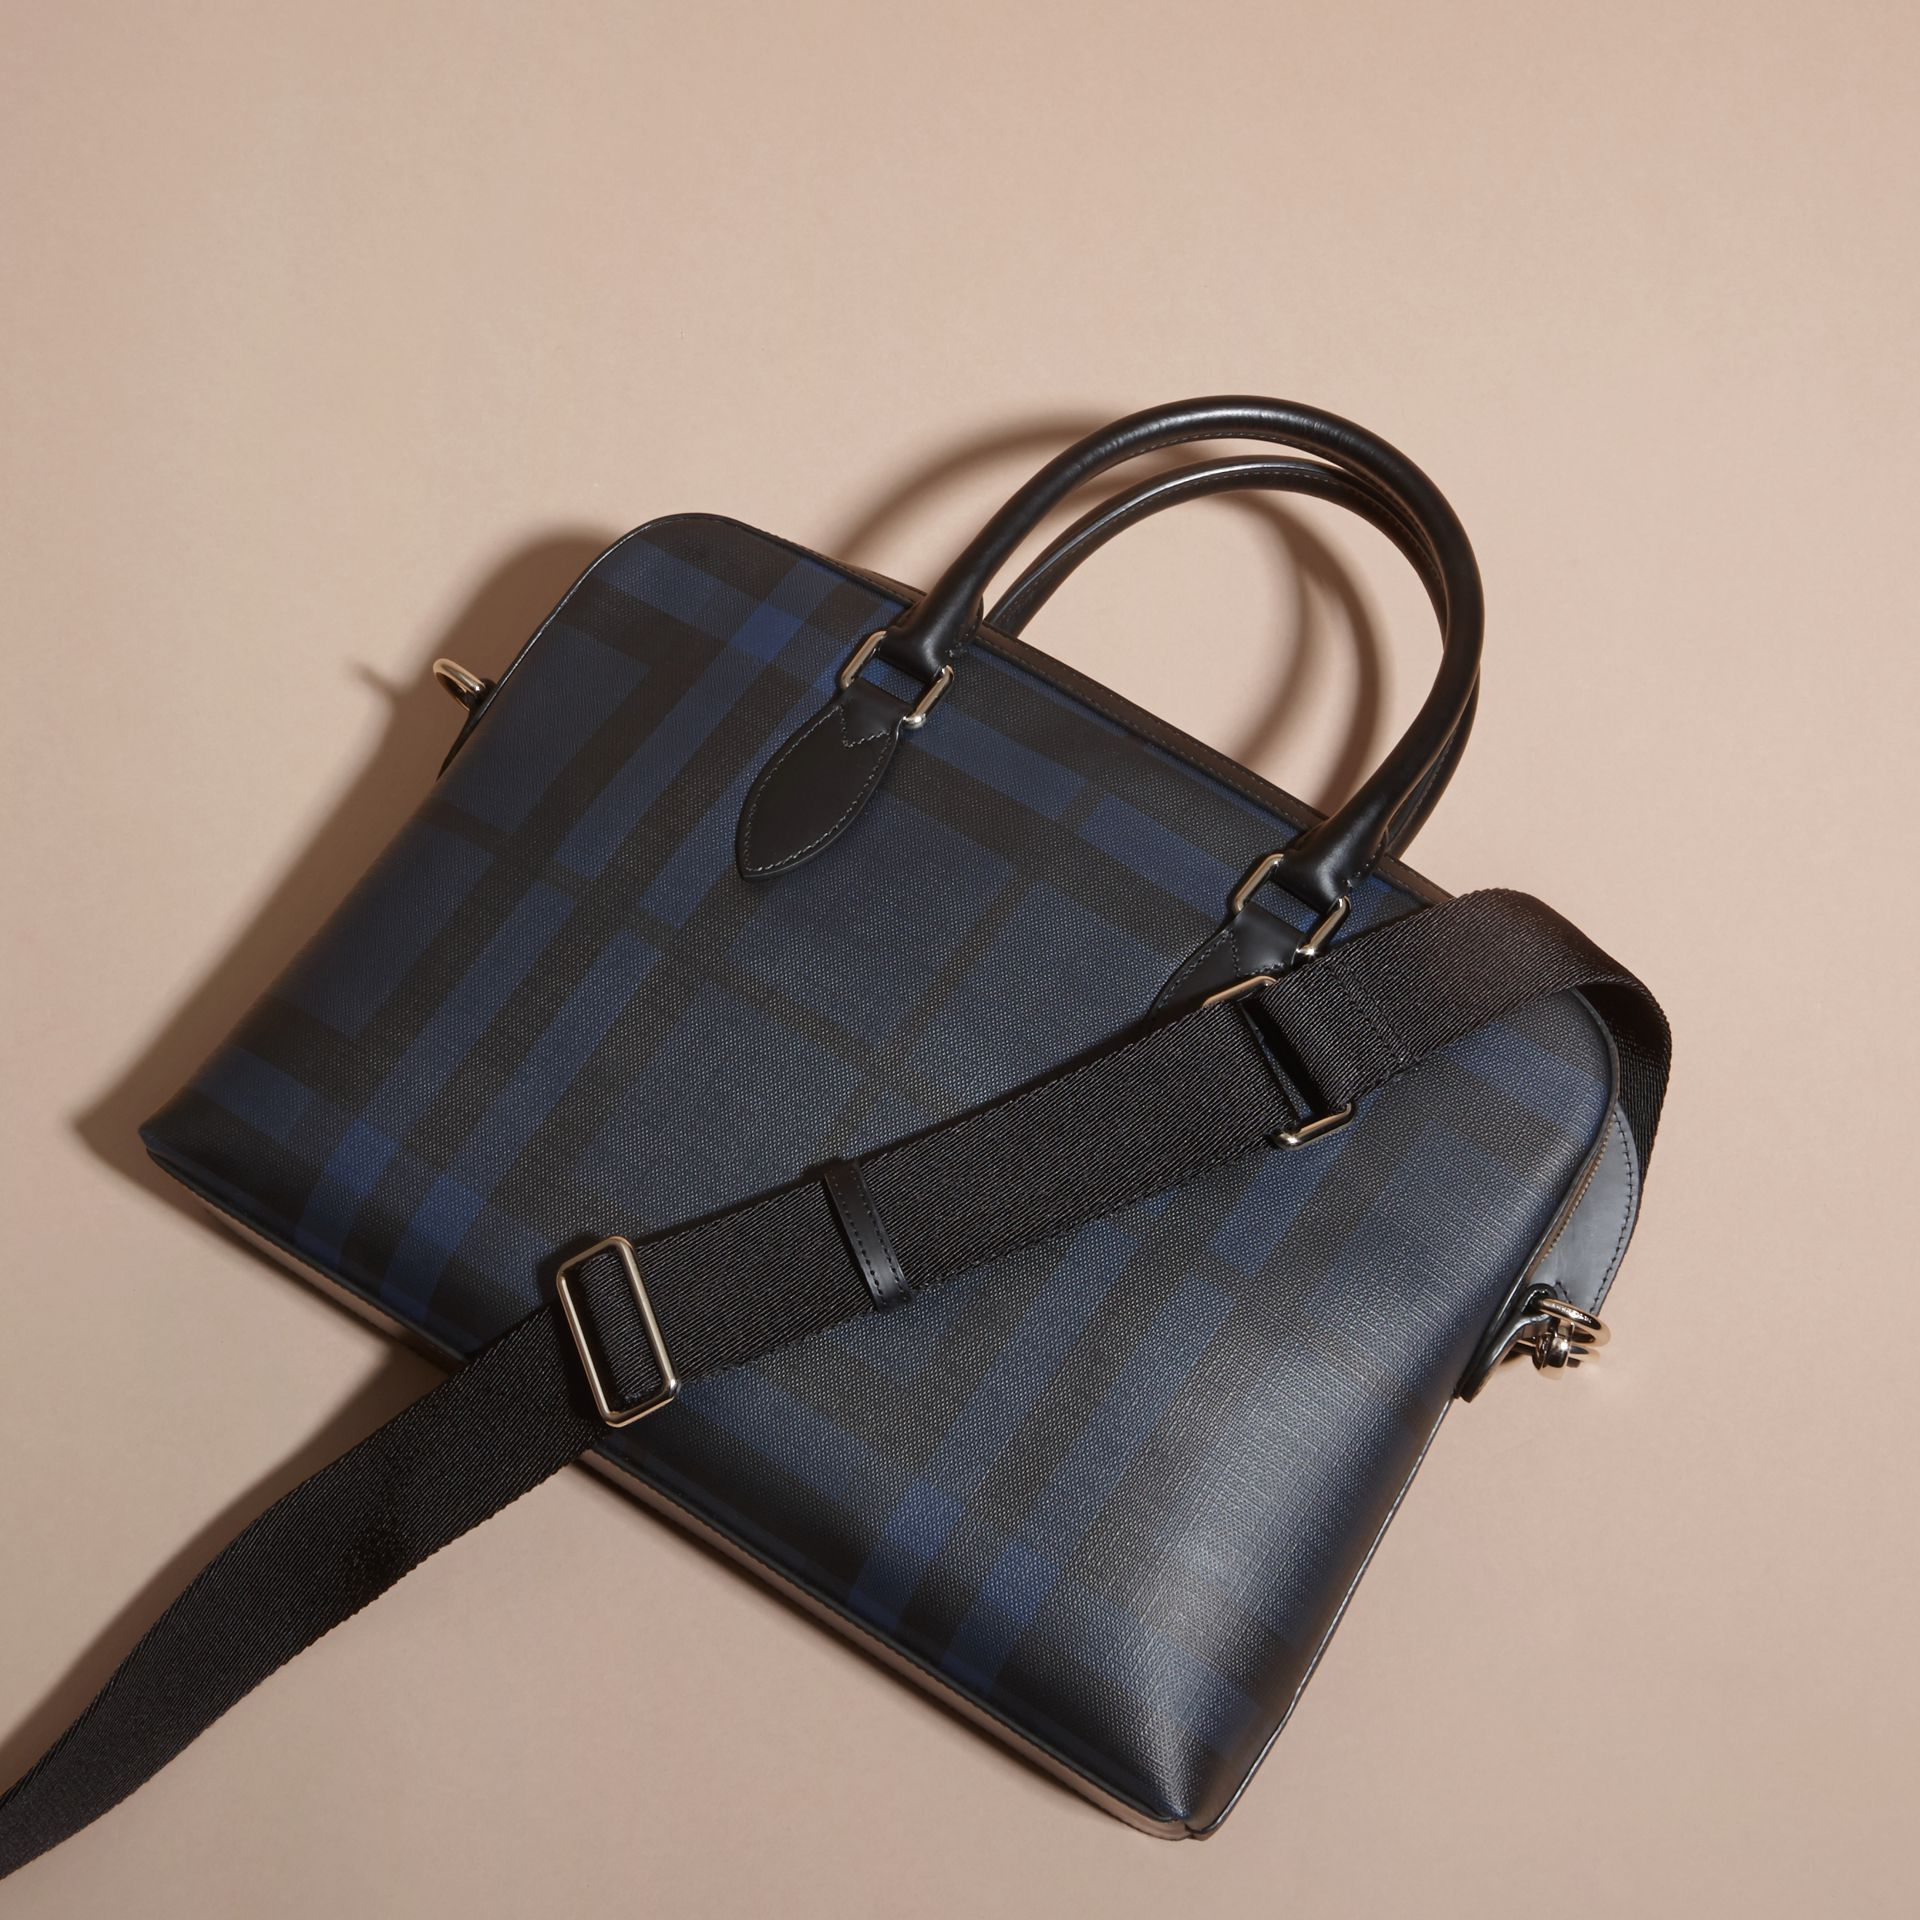 Sac The Barrow fin avec motif London check (Marine/noir) - Homme | Burberry - photo de la galerie 4